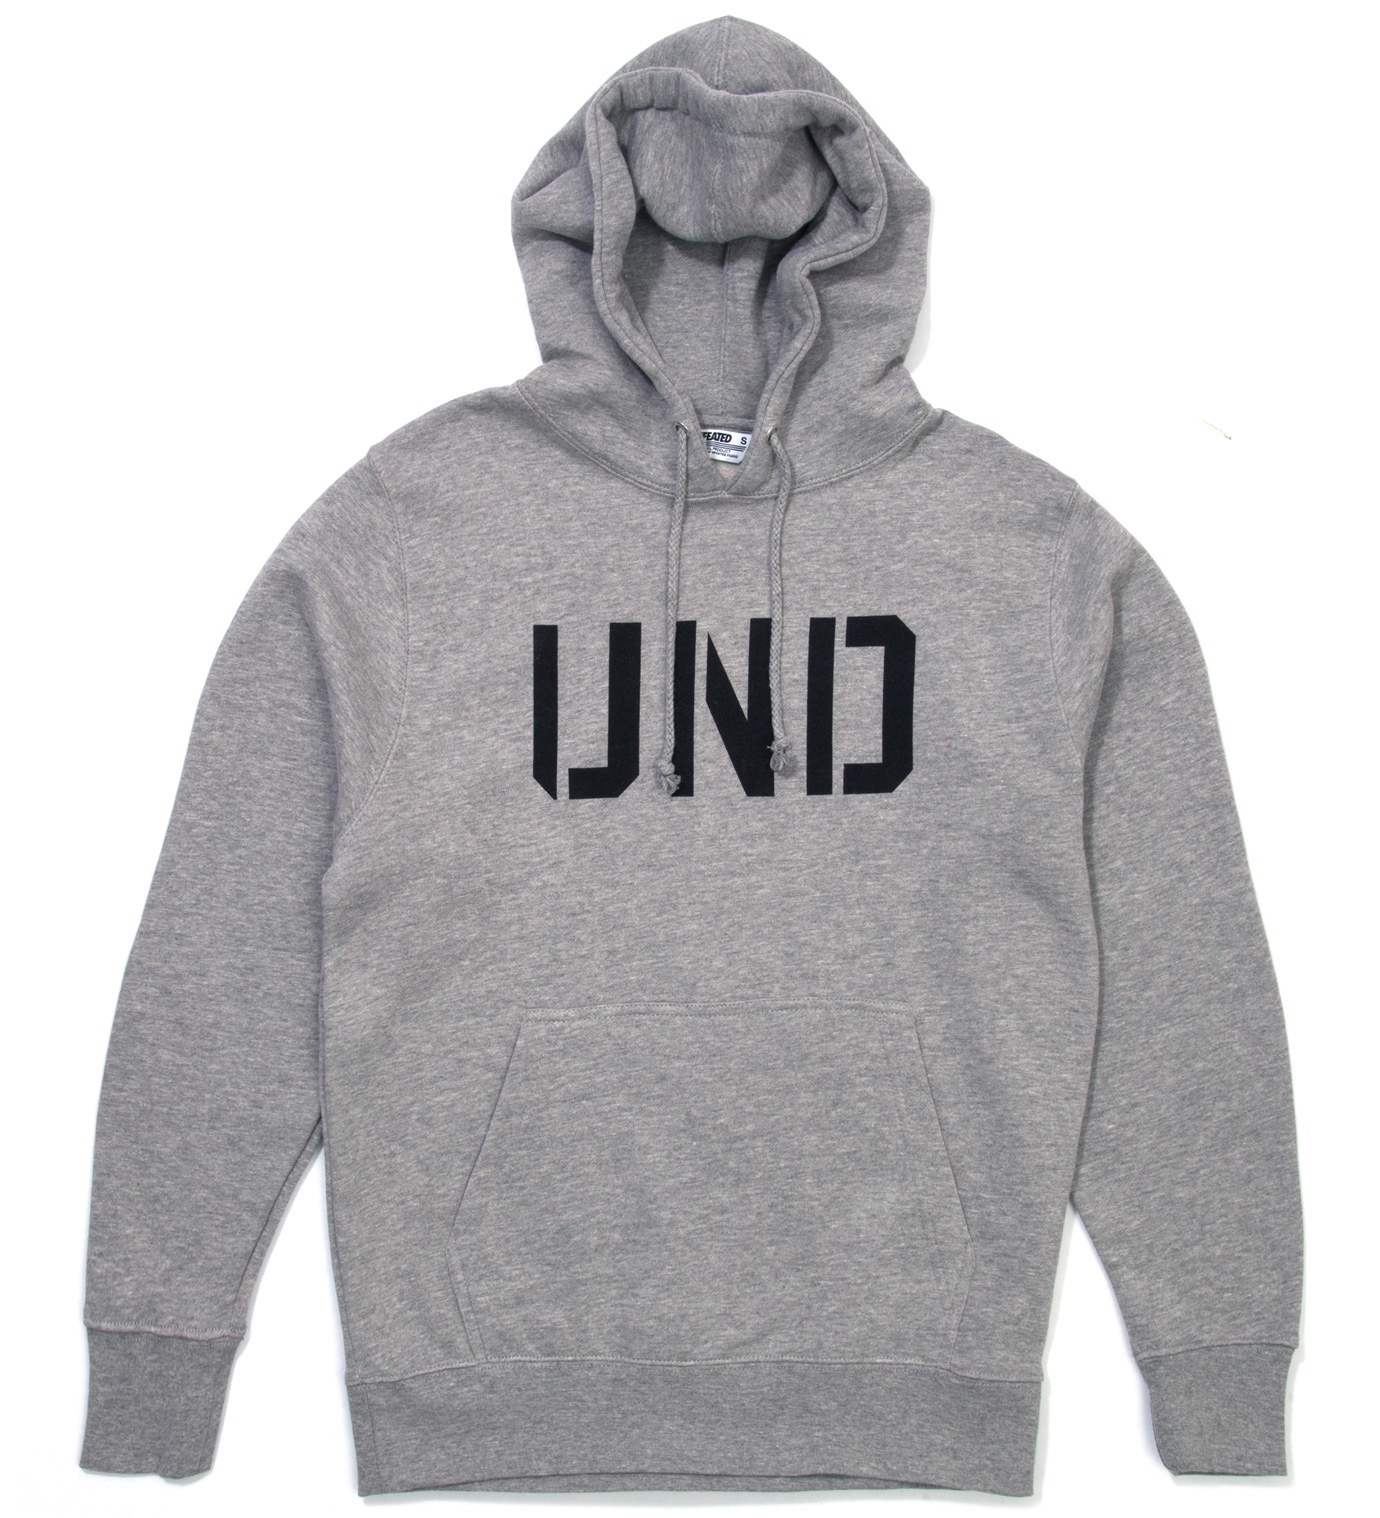 UNDEFEATED Heather Grey UND Hoodie